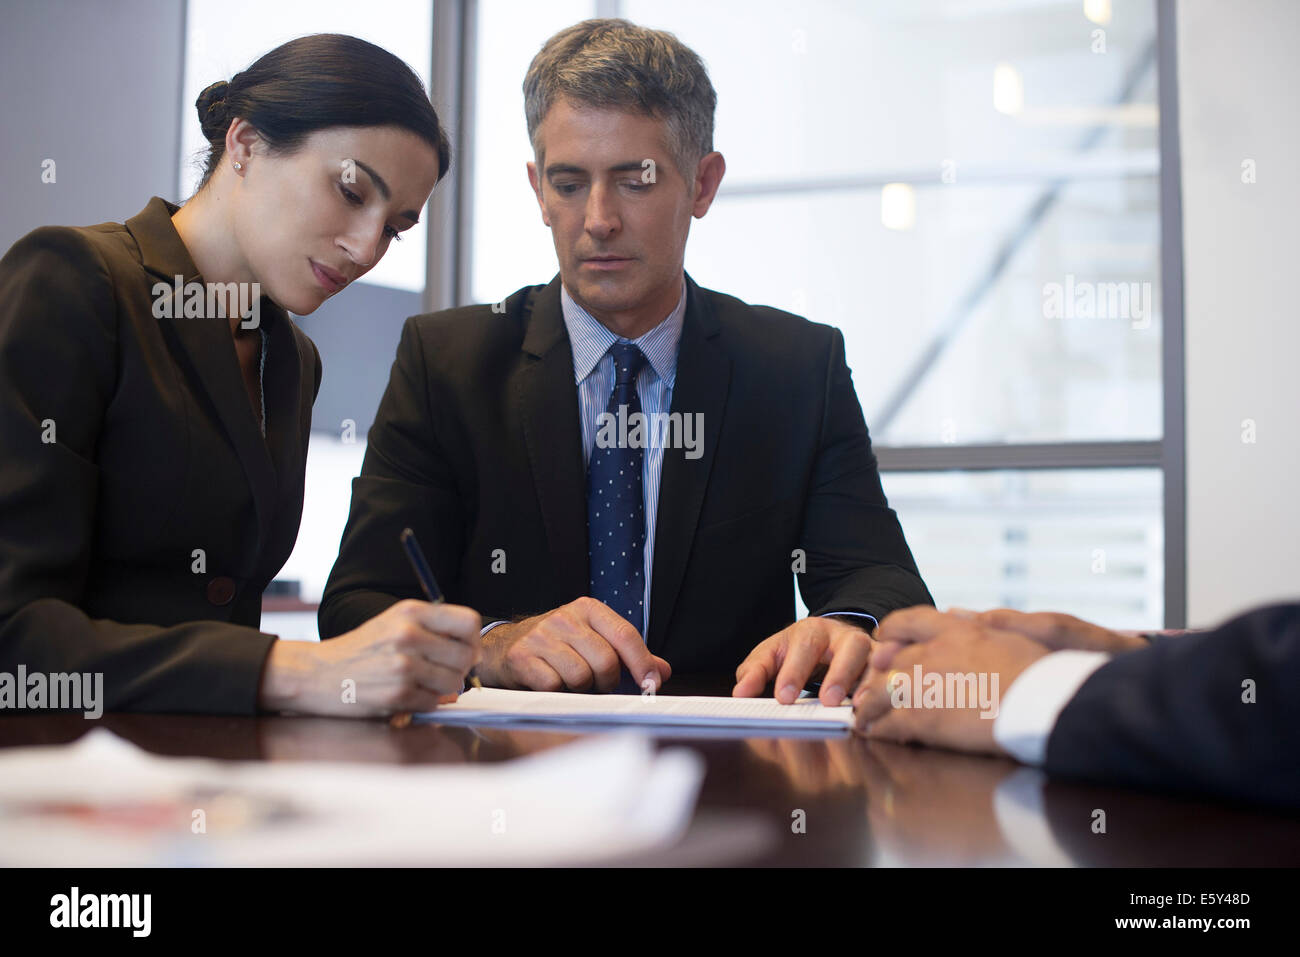 Business meeting, businesswoman signing document while associates observe - Stock Image